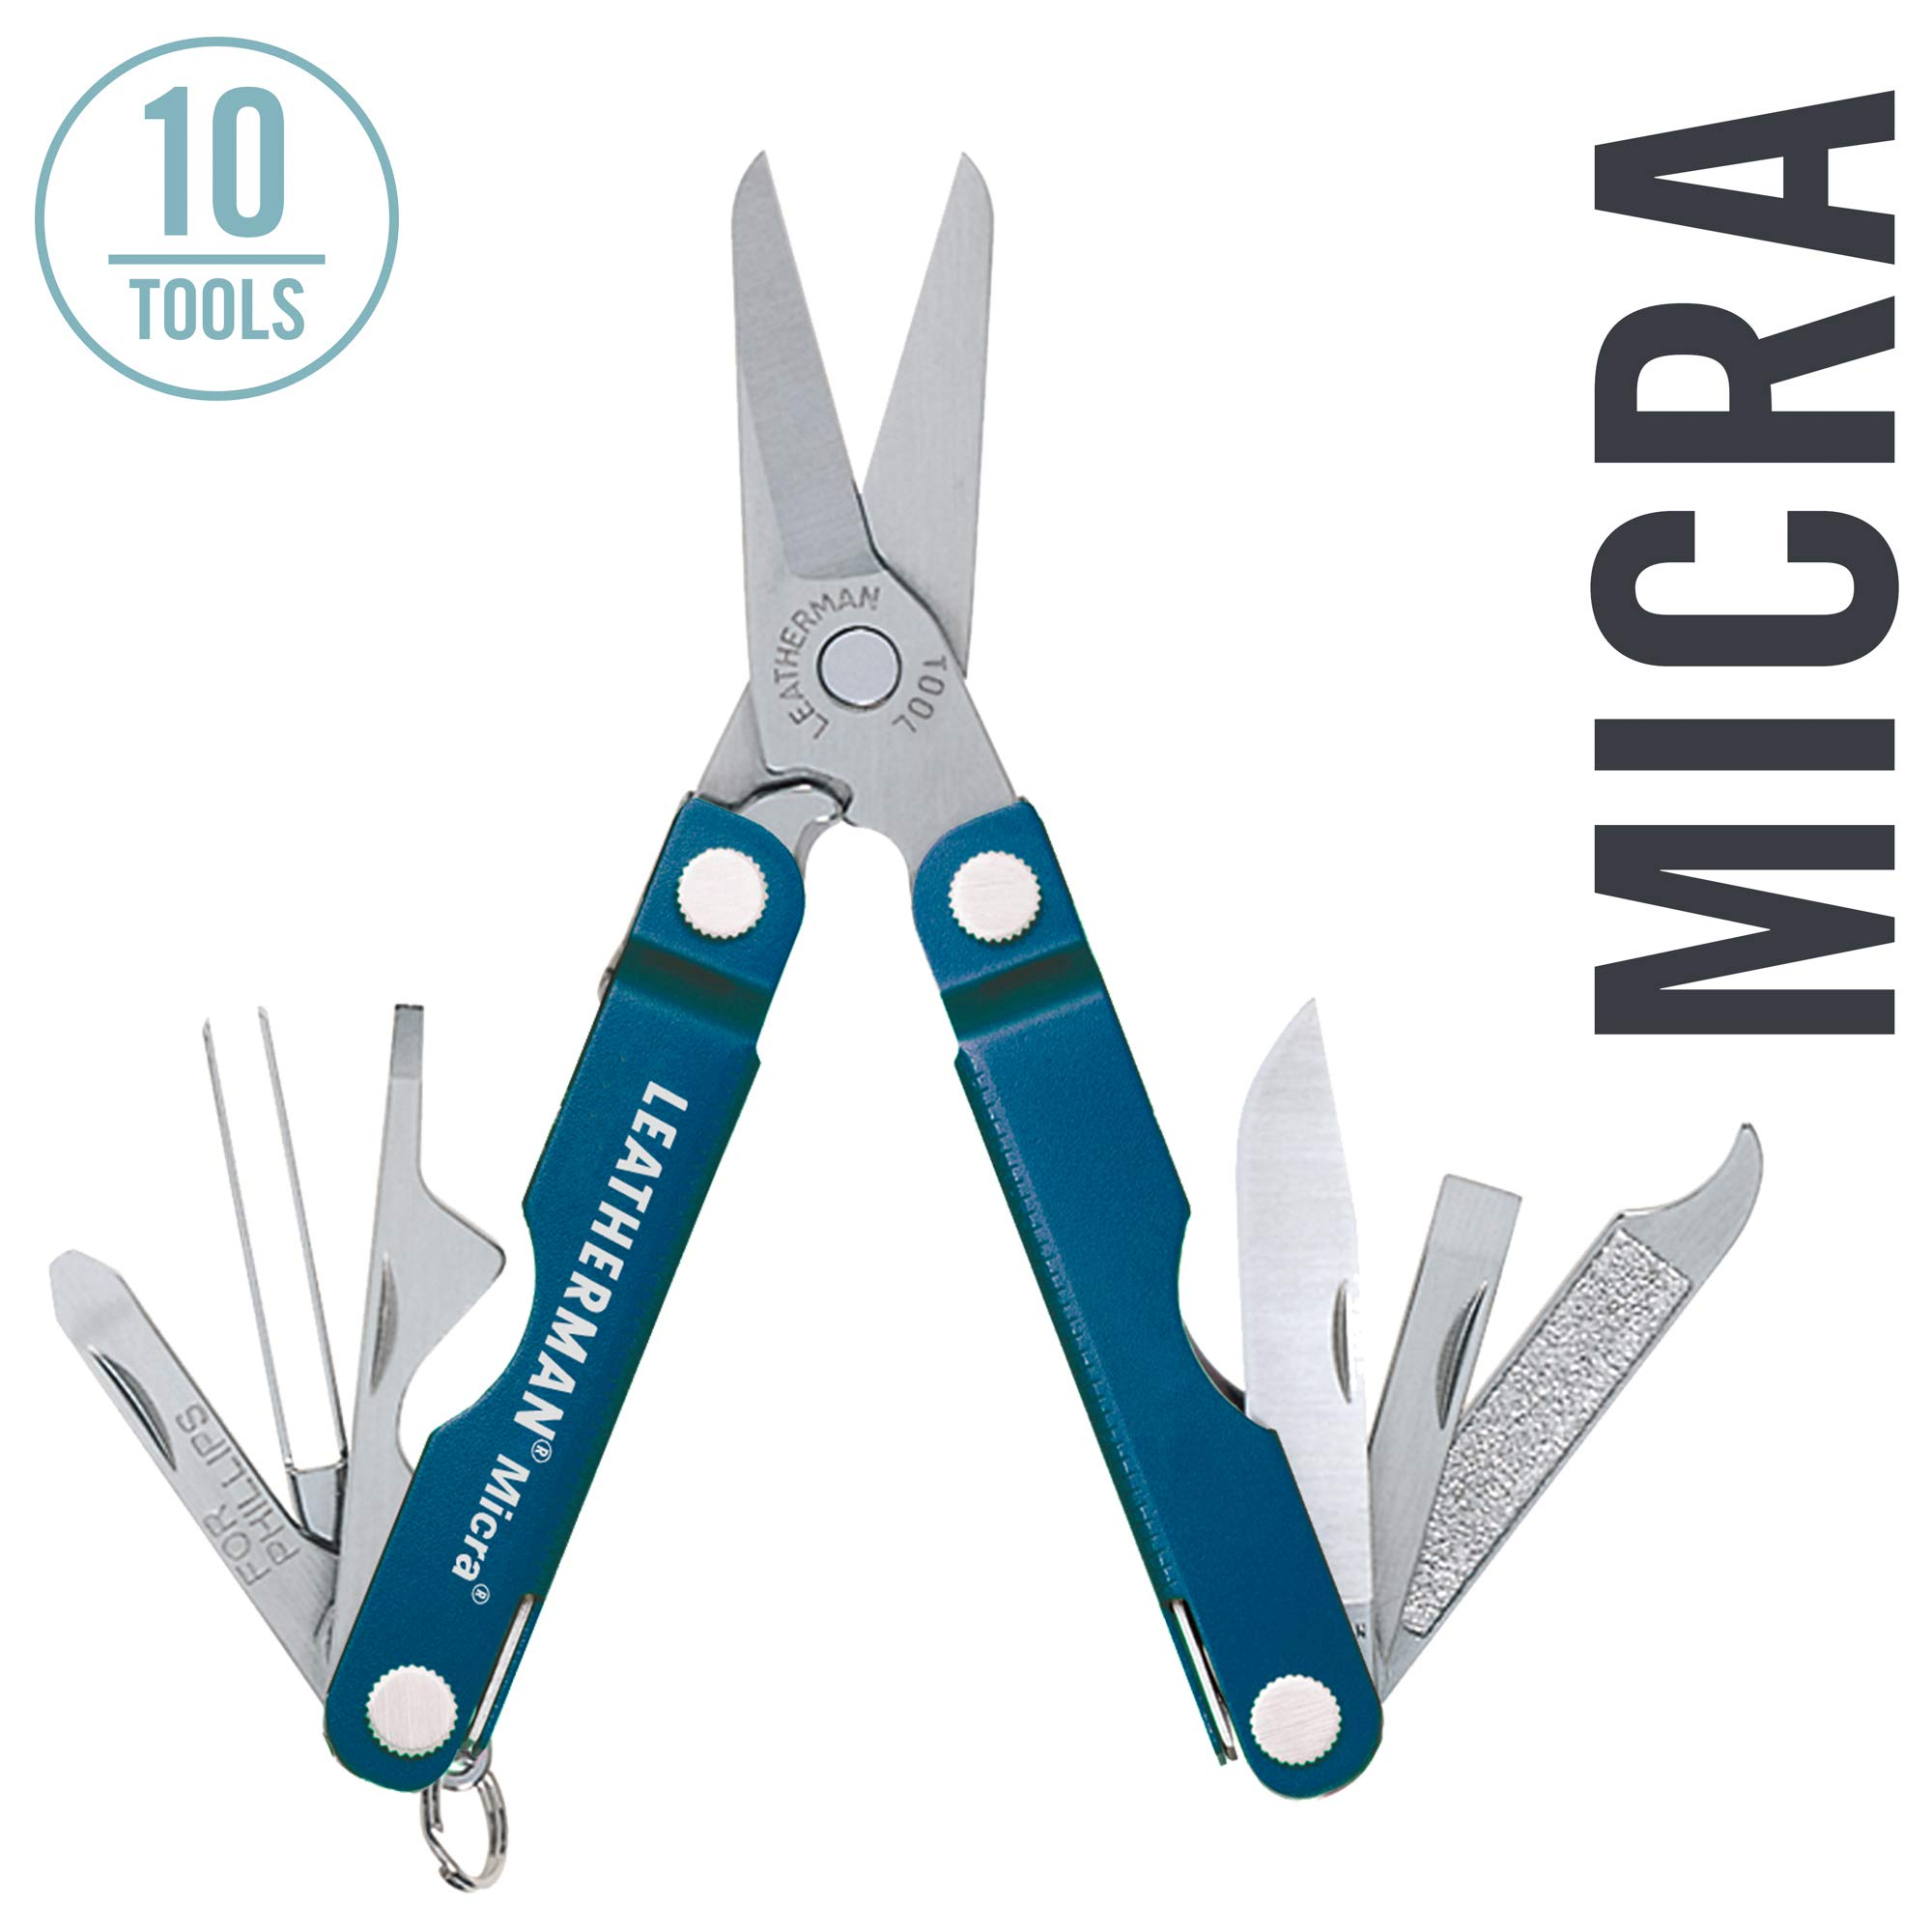 LEATHERMAN - Micra Keychain Multitool with Spring-Action Scissors and Grooming Tools, Stainless Steel, Blue